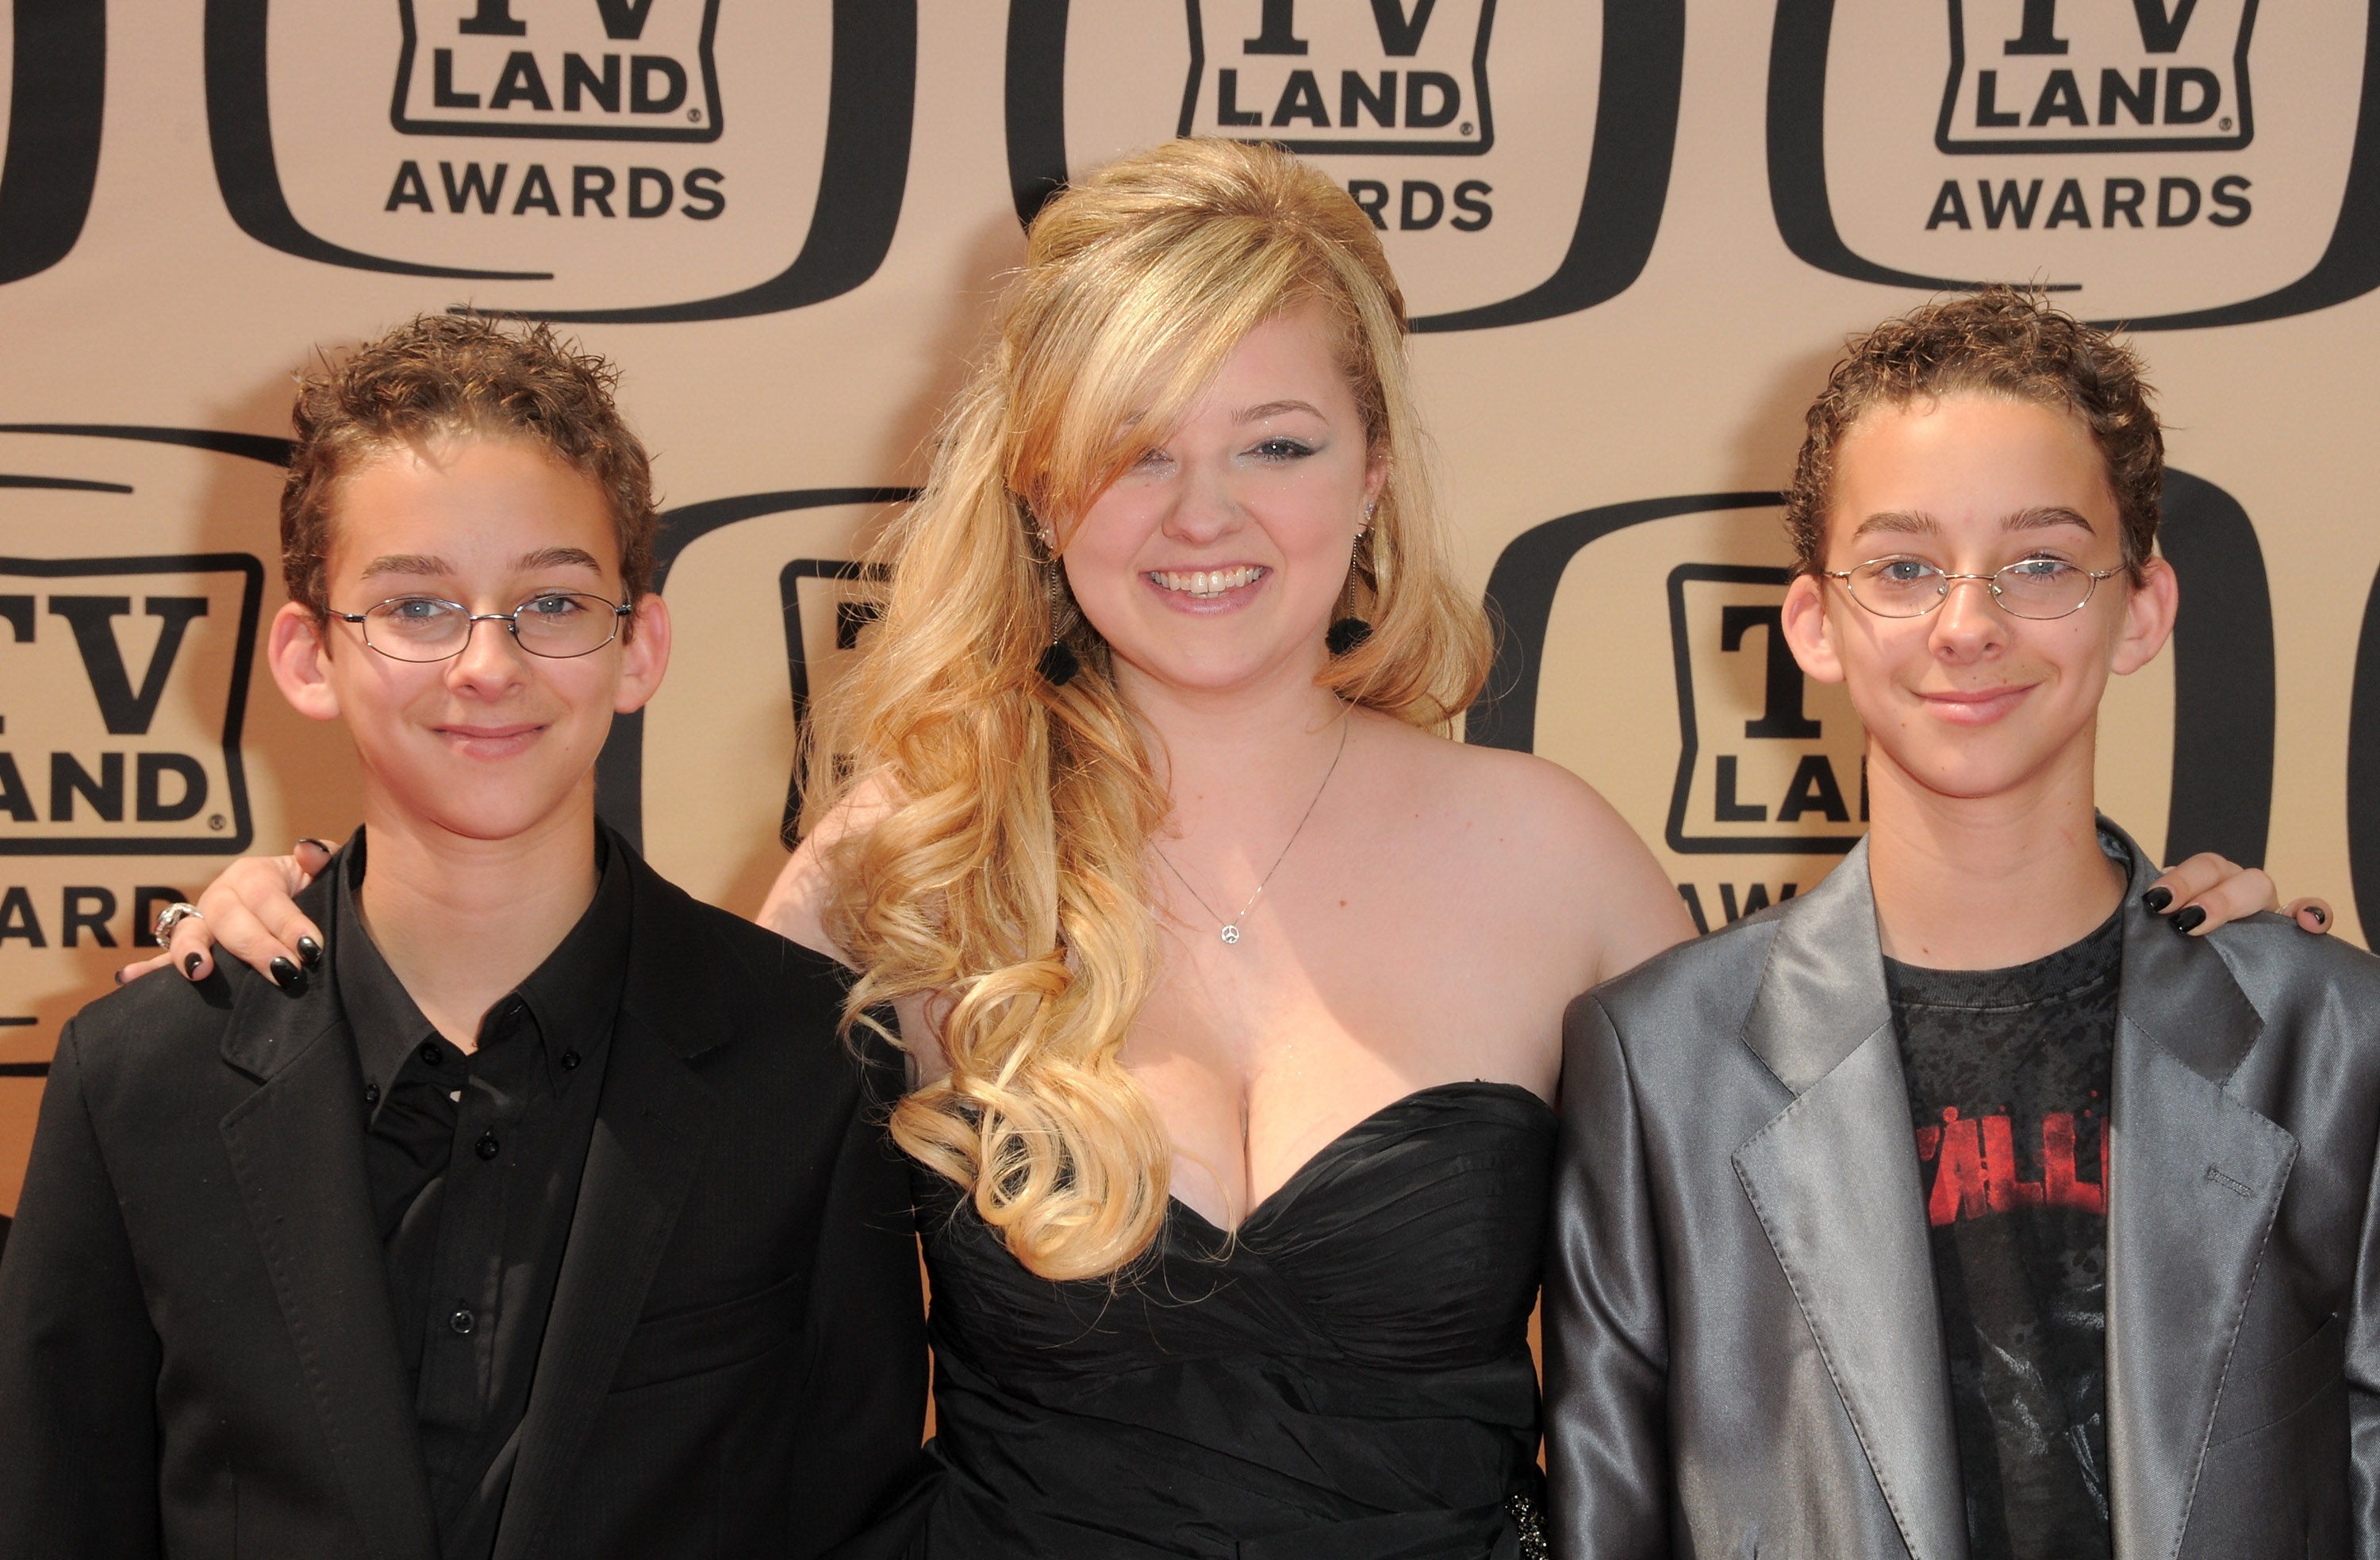 Sawyer Sweeten, Madylin Sweeten and Sullivan Sweeten, left to right, arrives at 8th Annual TV Land Awards at Sony Studios on April 17, 2010, in Los Angeles, Calif.